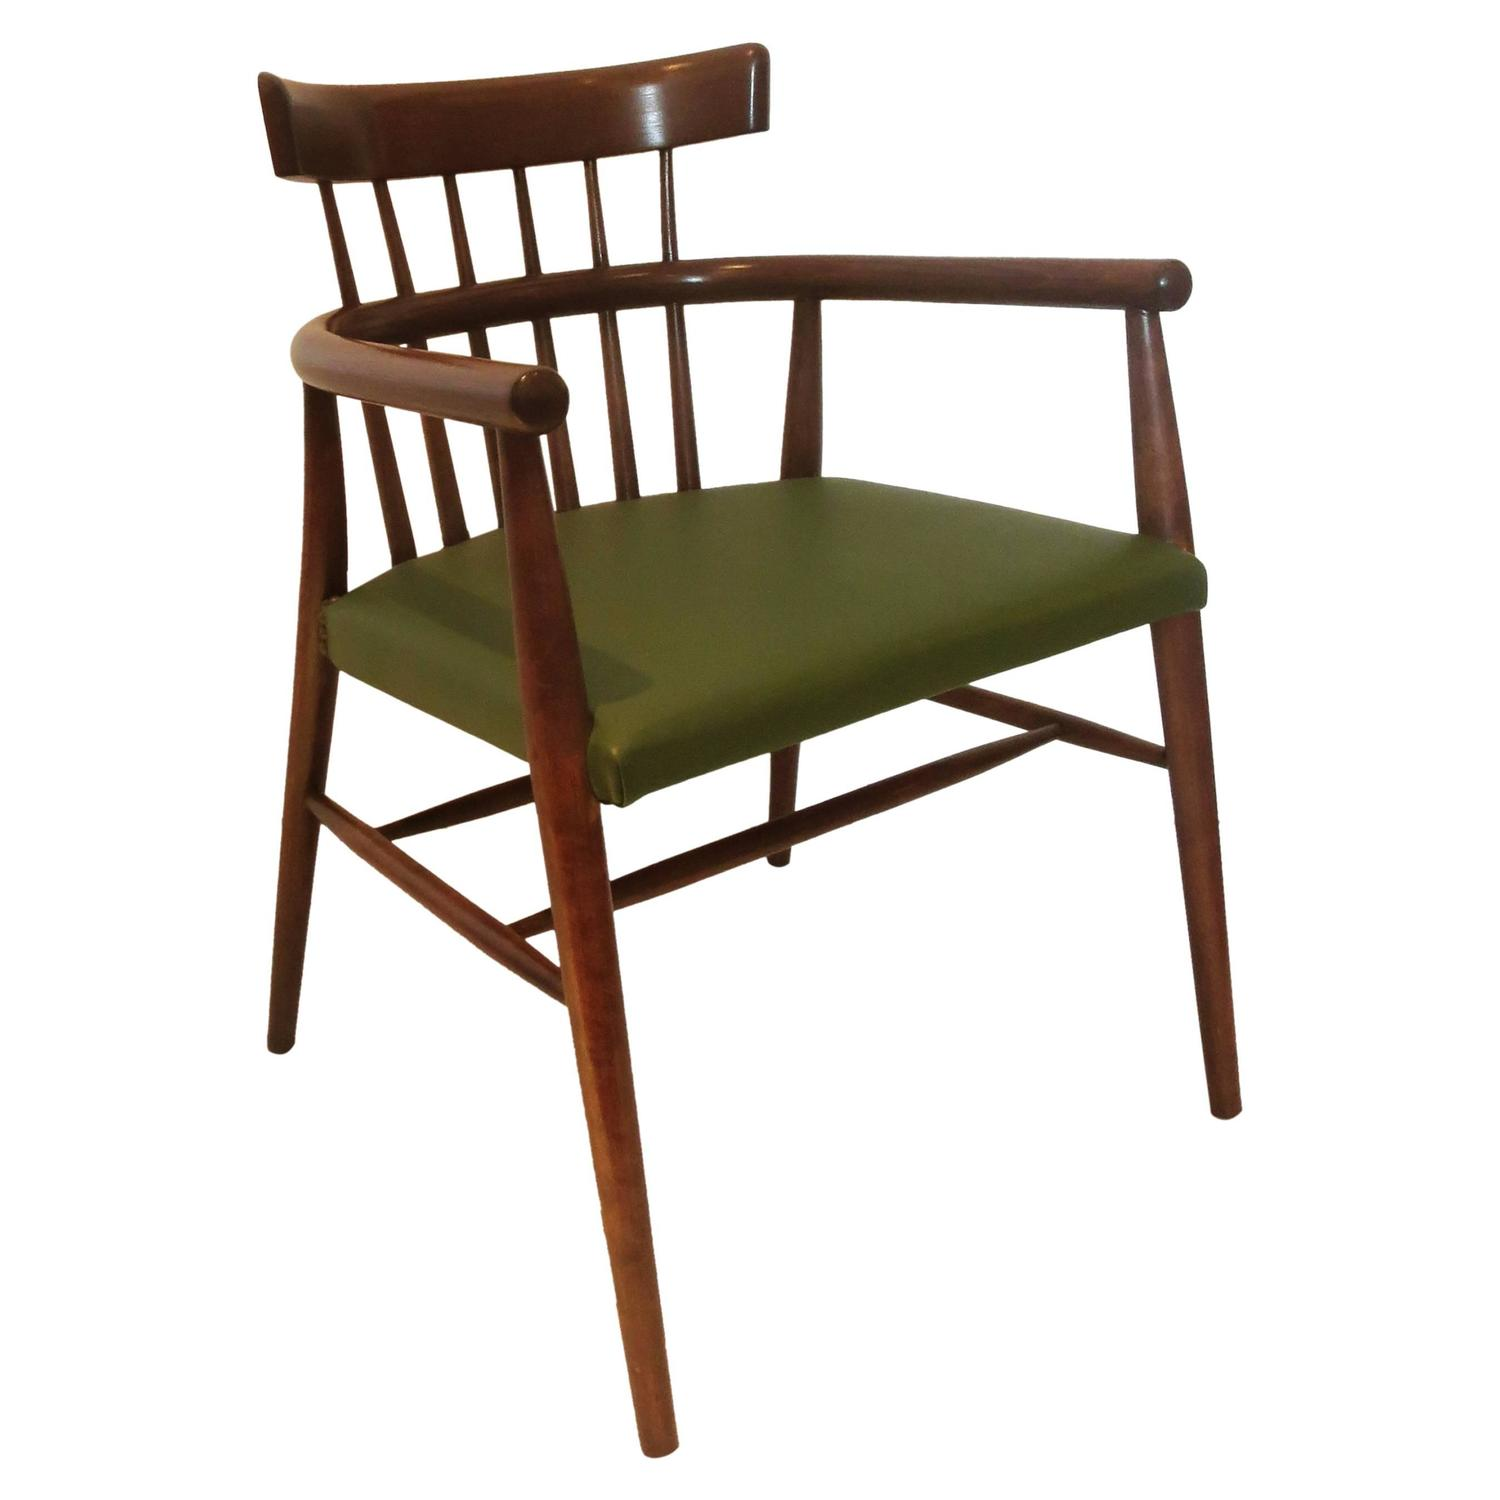 Danish Modern Windsor Style Spindle Back Armchair In Leather Seat At 1stdibs